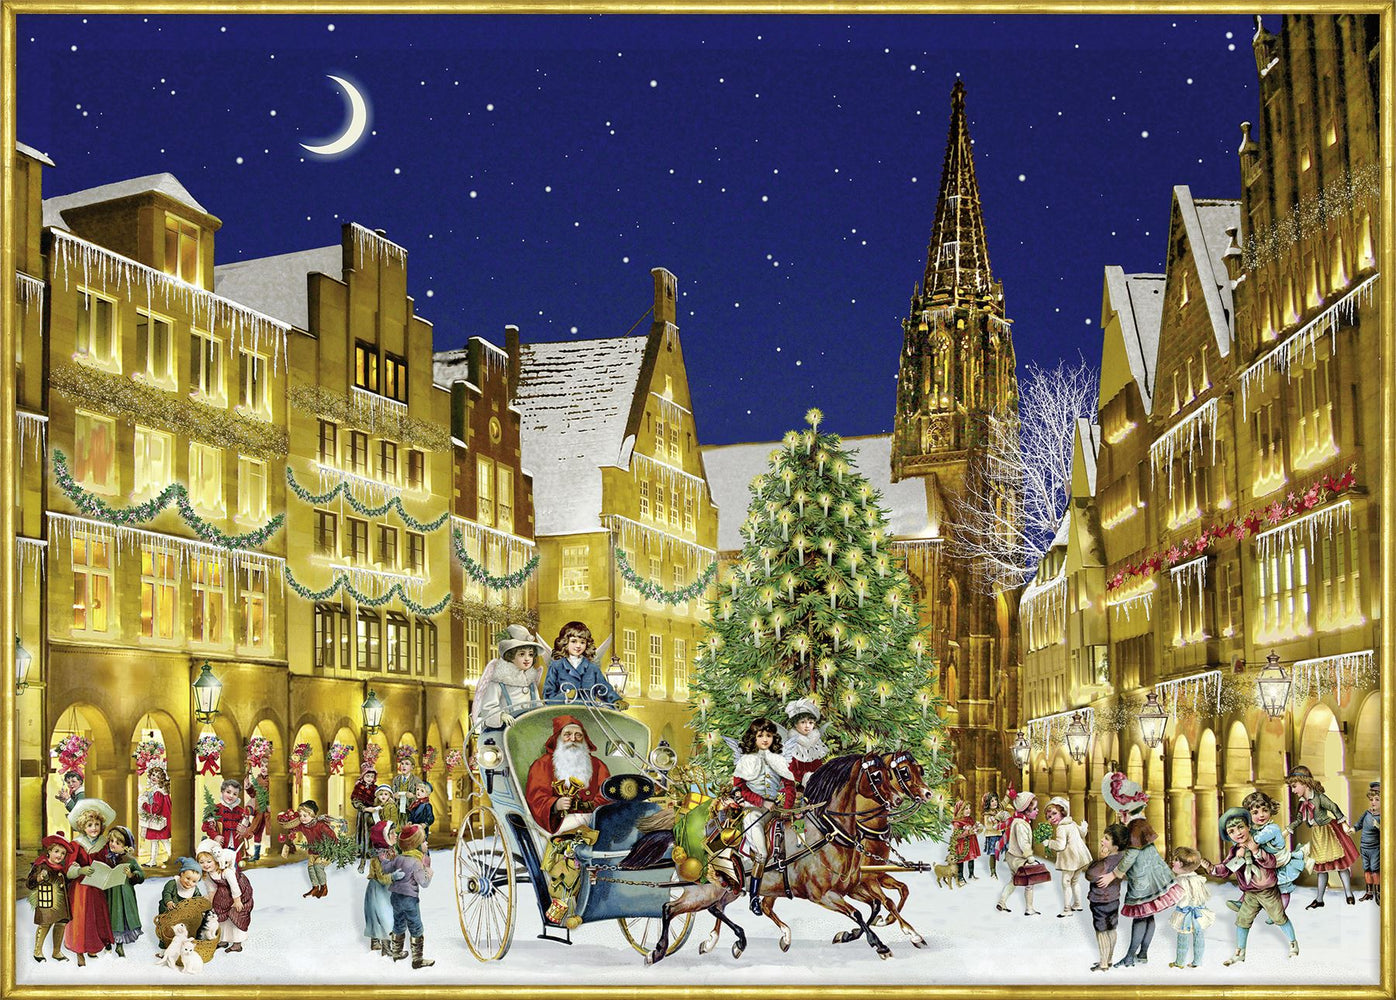 The German Town - Coppenrath 1000 Piece Jigsaw Puzzle